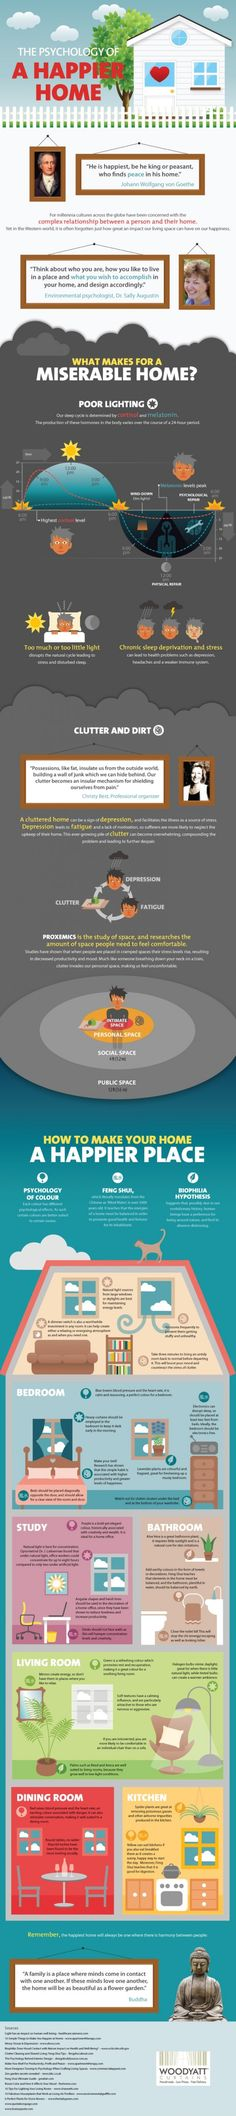 Psychology of a Happier Home Infographic for Homeowners - Interesting!